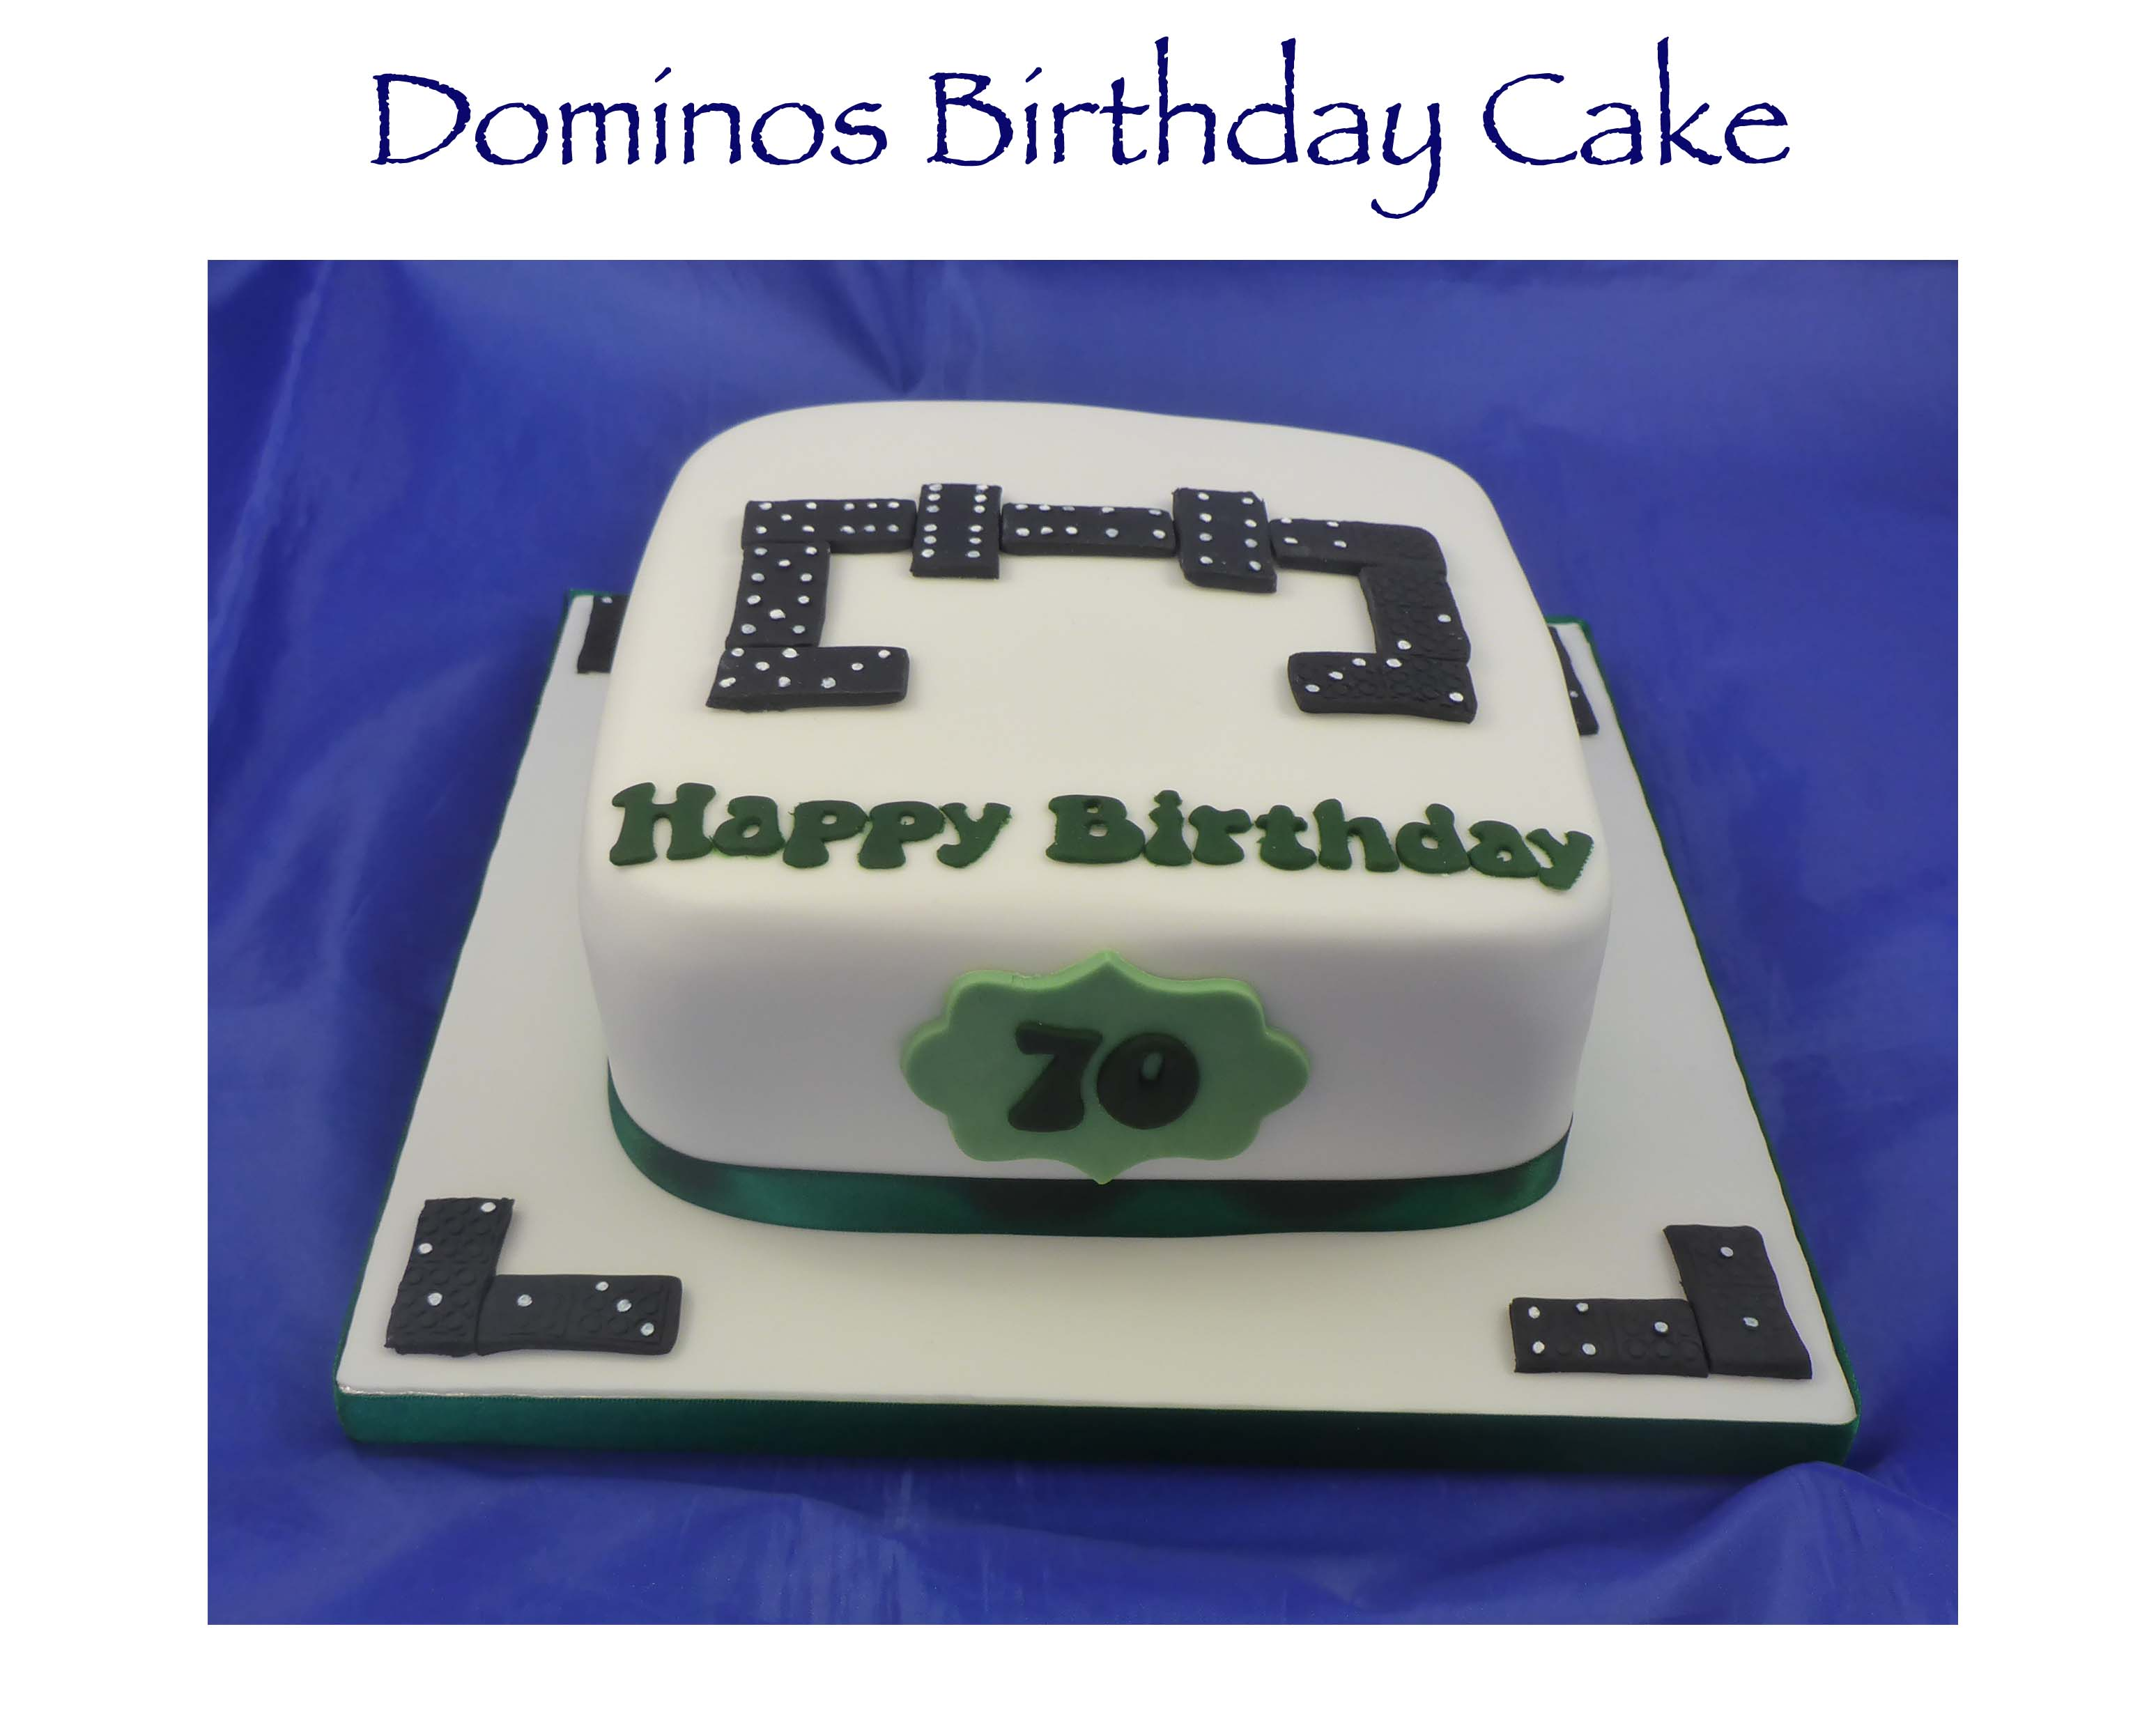 Dominos Birthday Cake